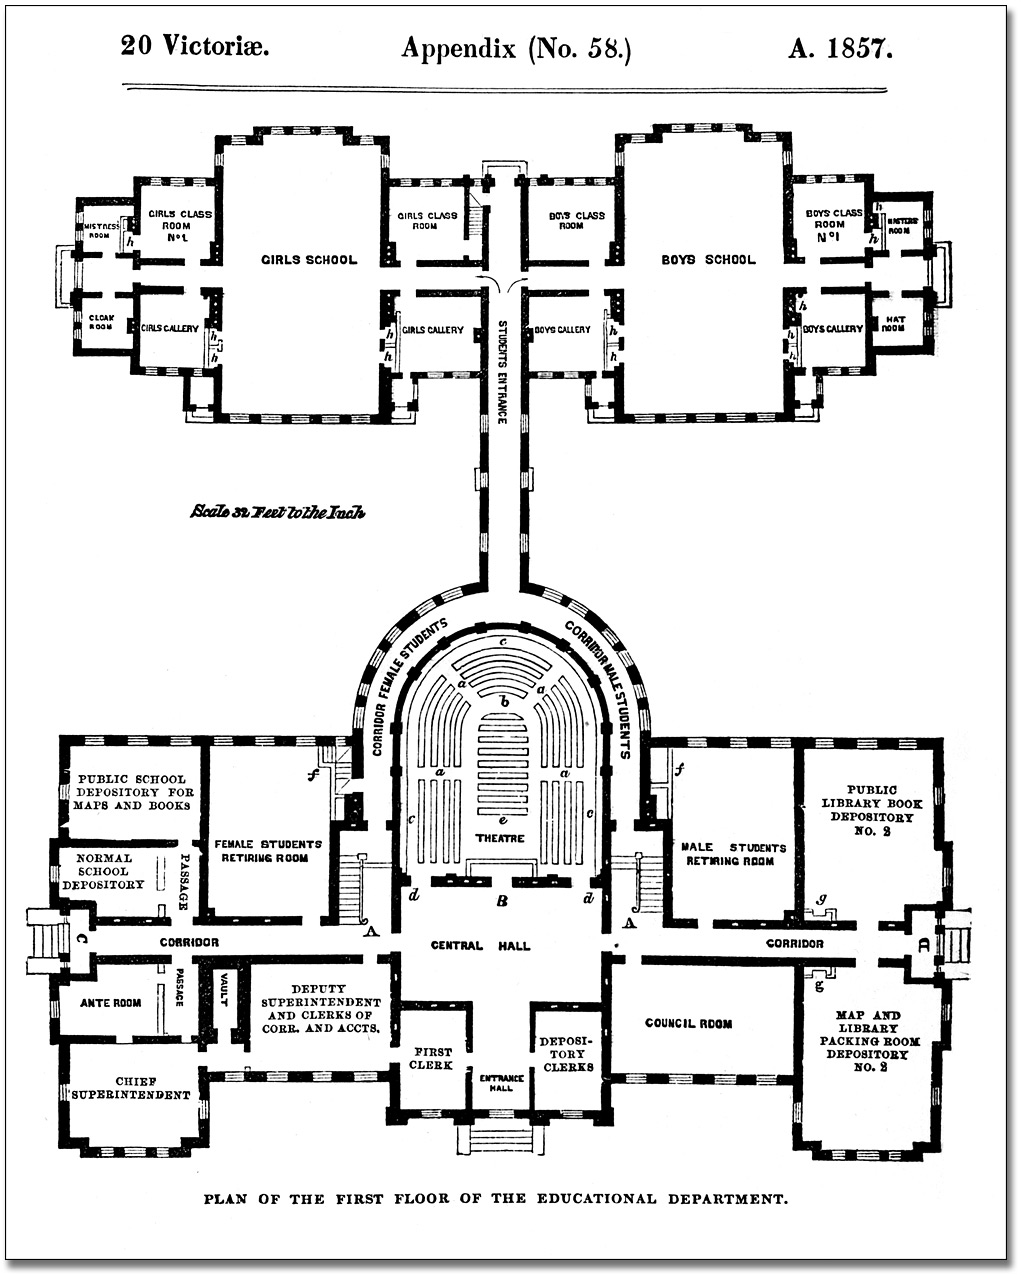 file architectural measured drawings showing the floor